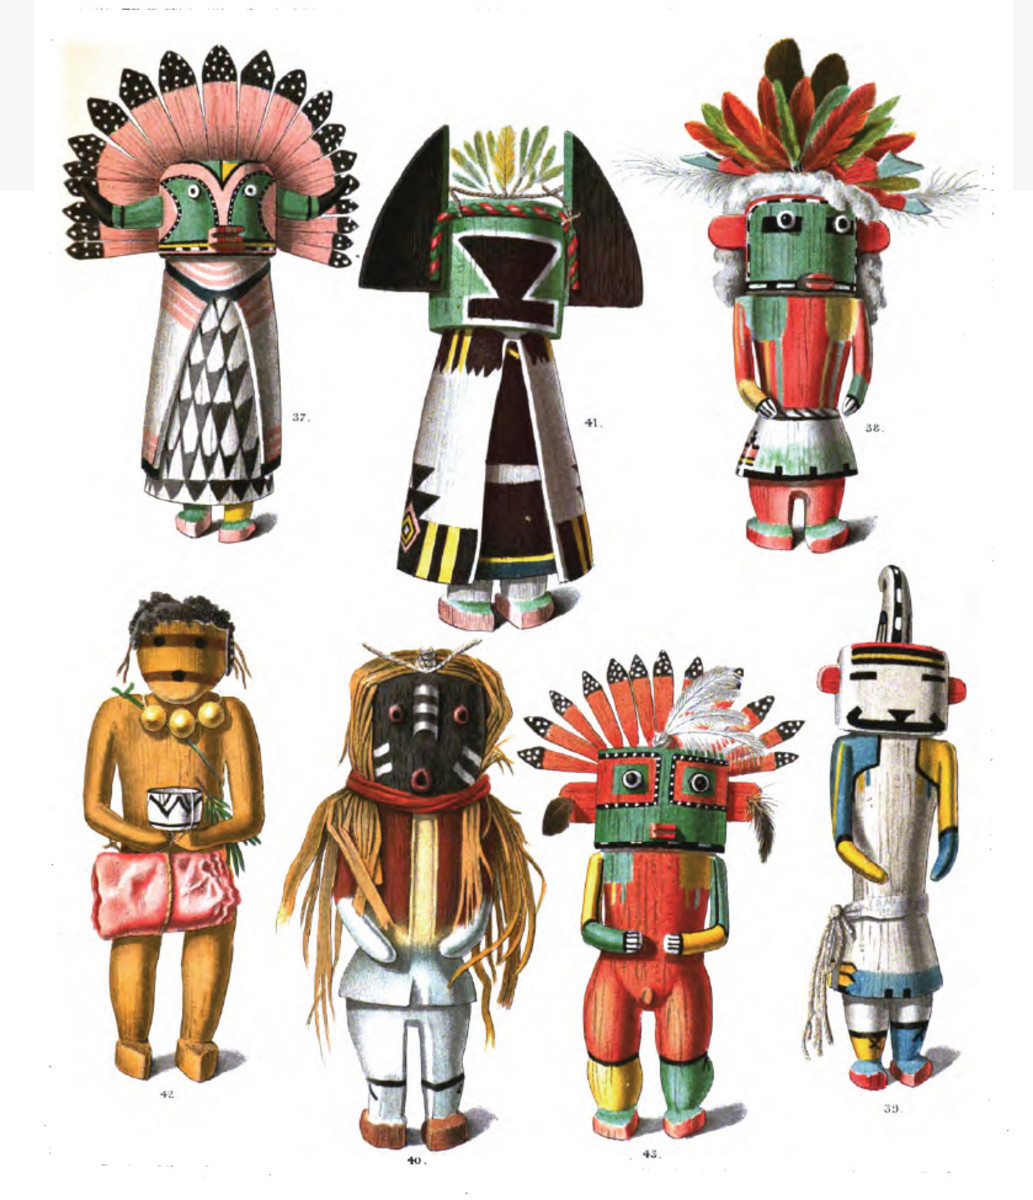 Hopi Kachnia dolls have been sold to museums and private collectors, but returned to the Hopi.